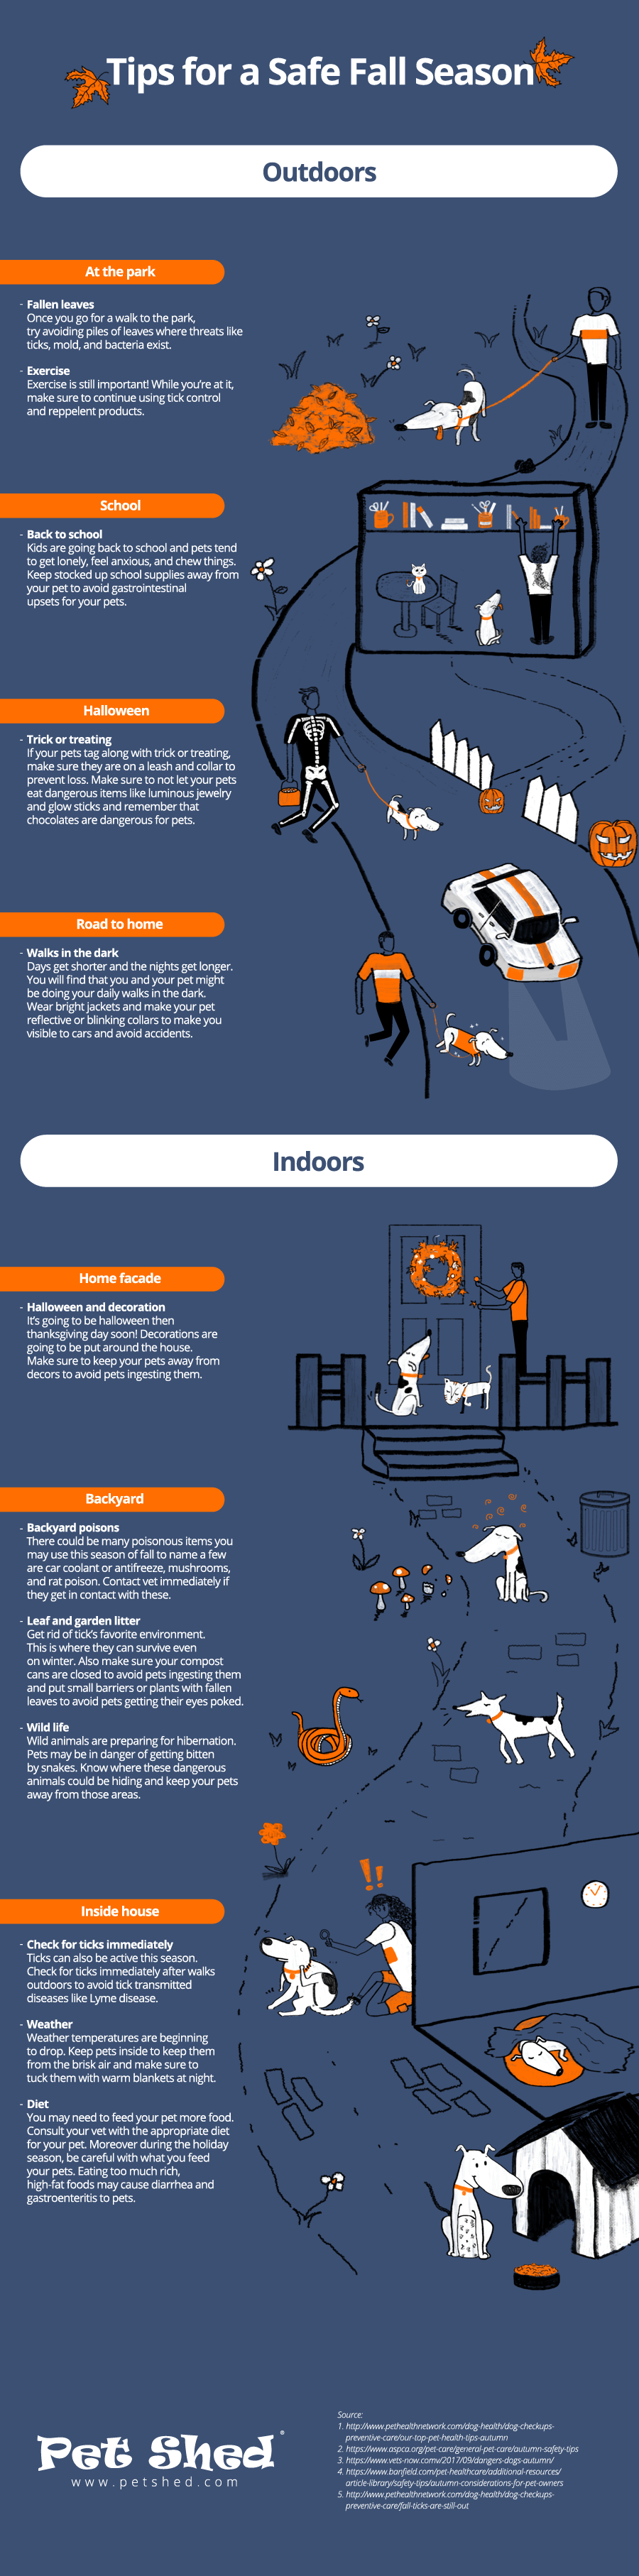 Tips for a Safe Fall Season - Infographic